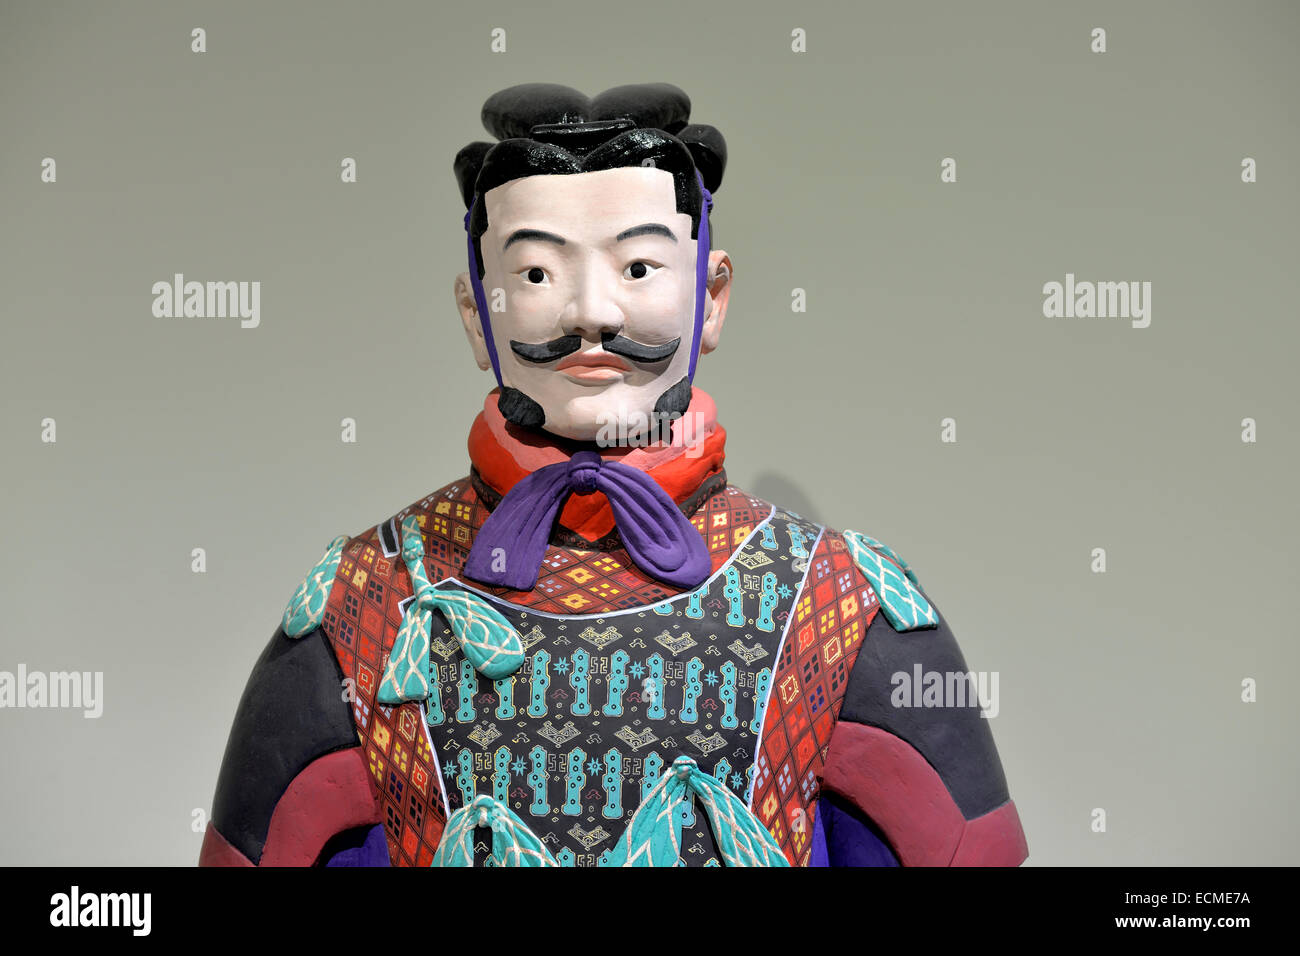 Terracotta warrior replicated in original colours, Mausoleum of the First Qin Emperor, Xi'an, Shaanxi Province, - Stock Image